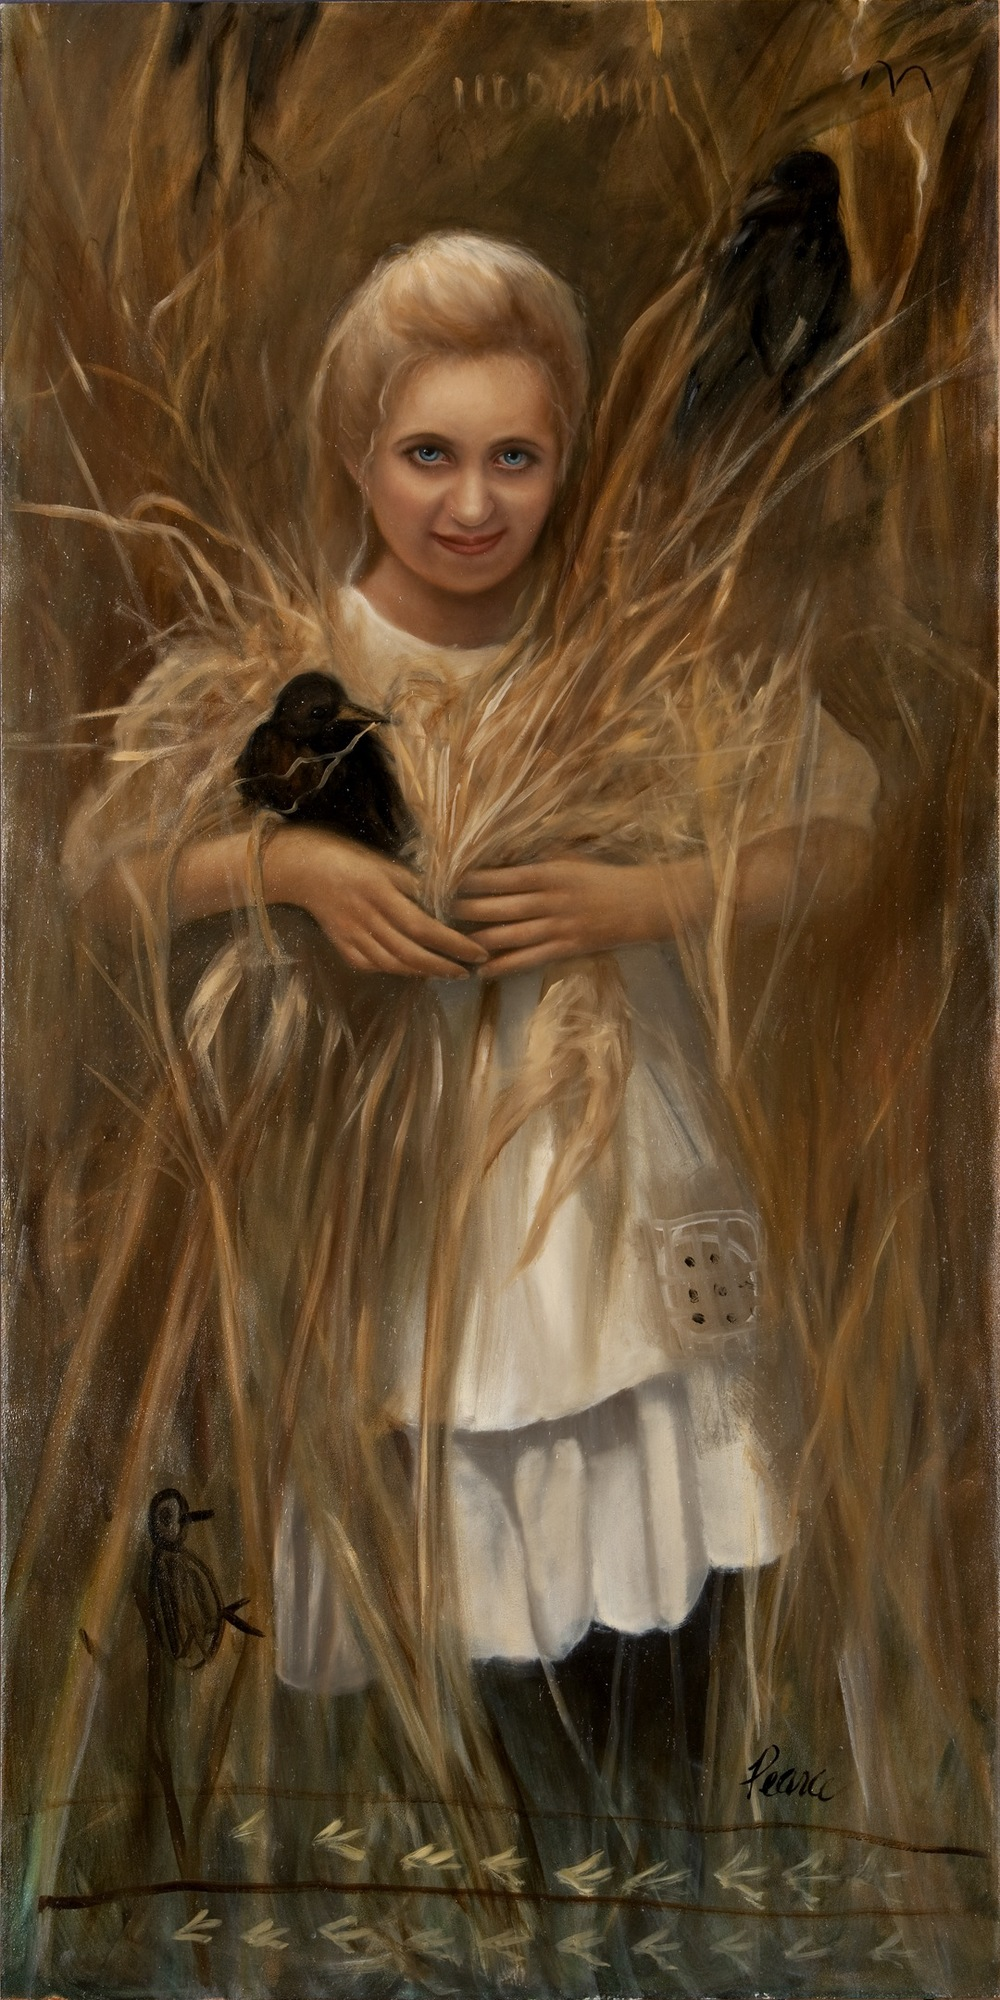 Corngirl,  2009, oil on panel, 48 x 24 inches,  sold